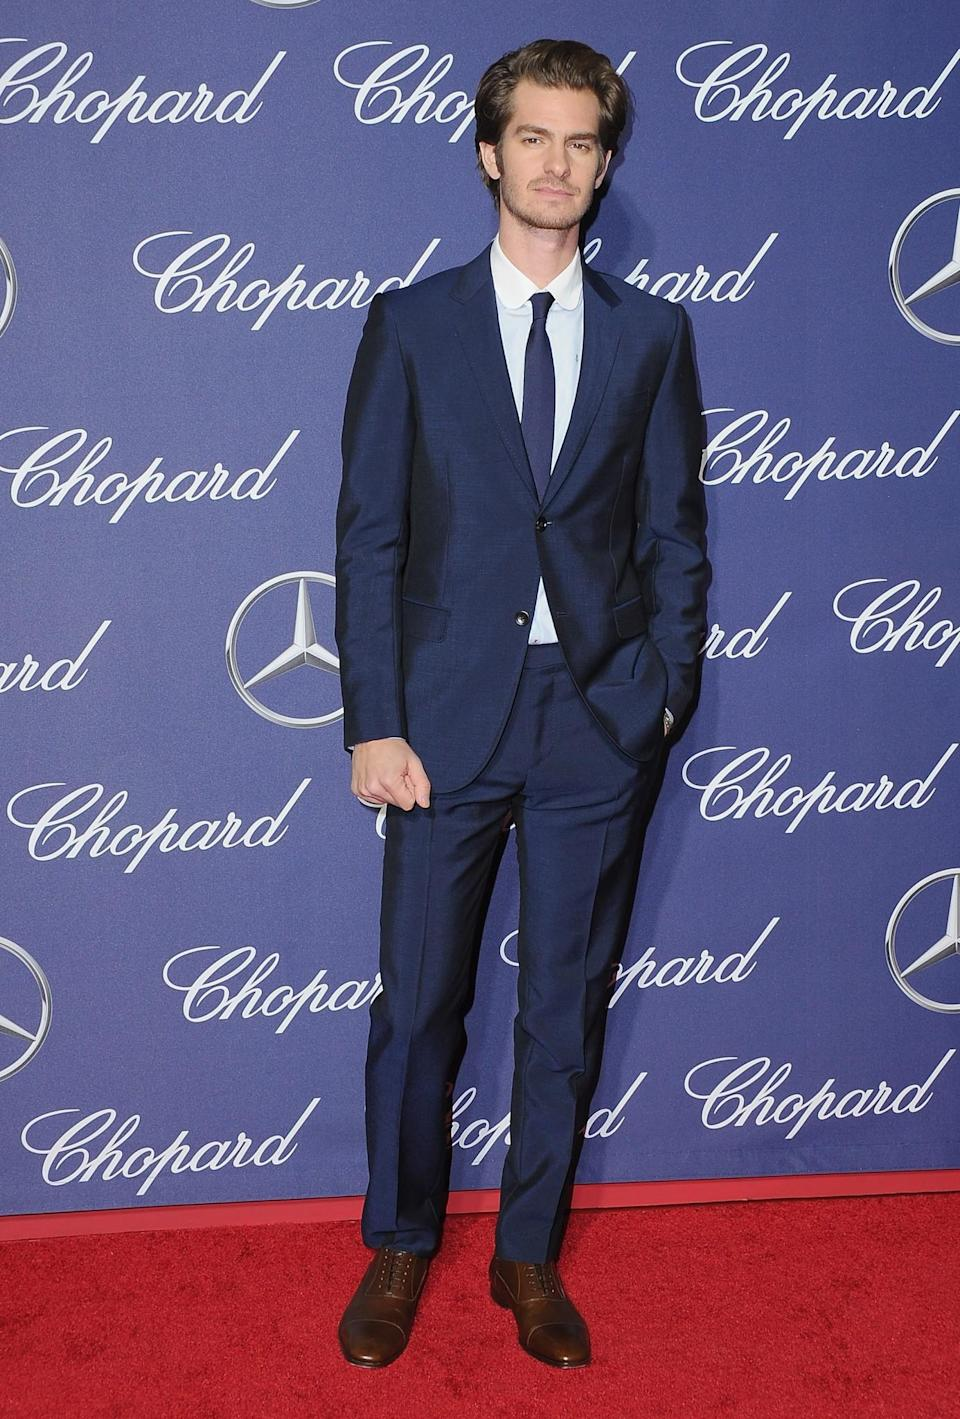 <p>Andrew, of 'Spiderman' fame, chose to rock a blue suit complete with skinny tie. [Photo: Getty] </p>